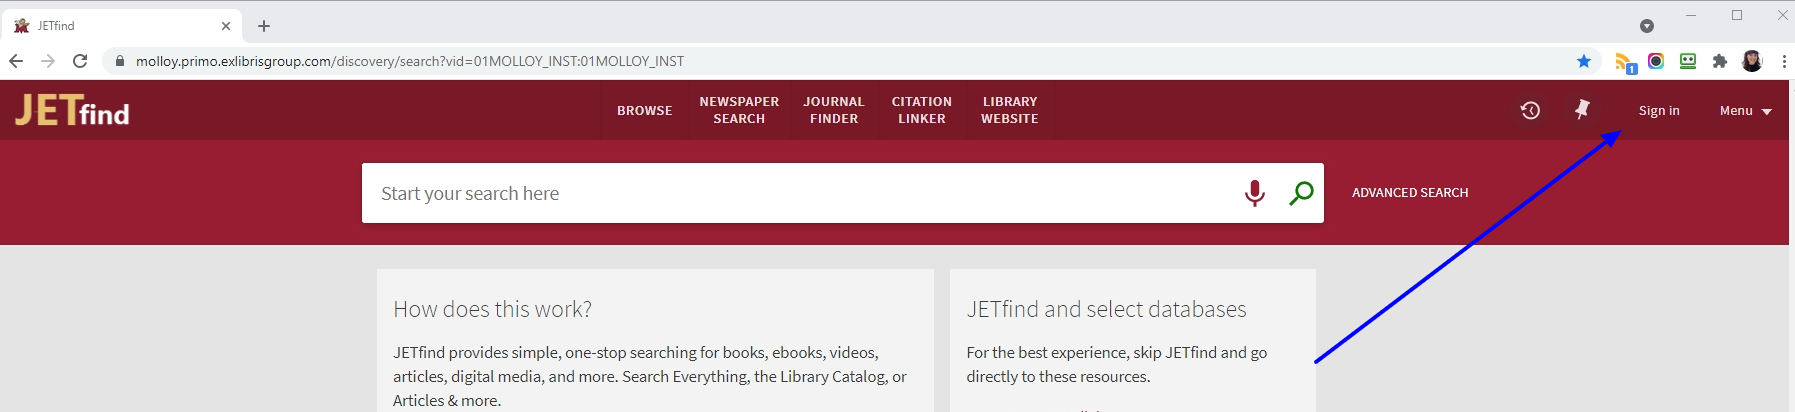 screenshot of main jetfind page with sign in to account link